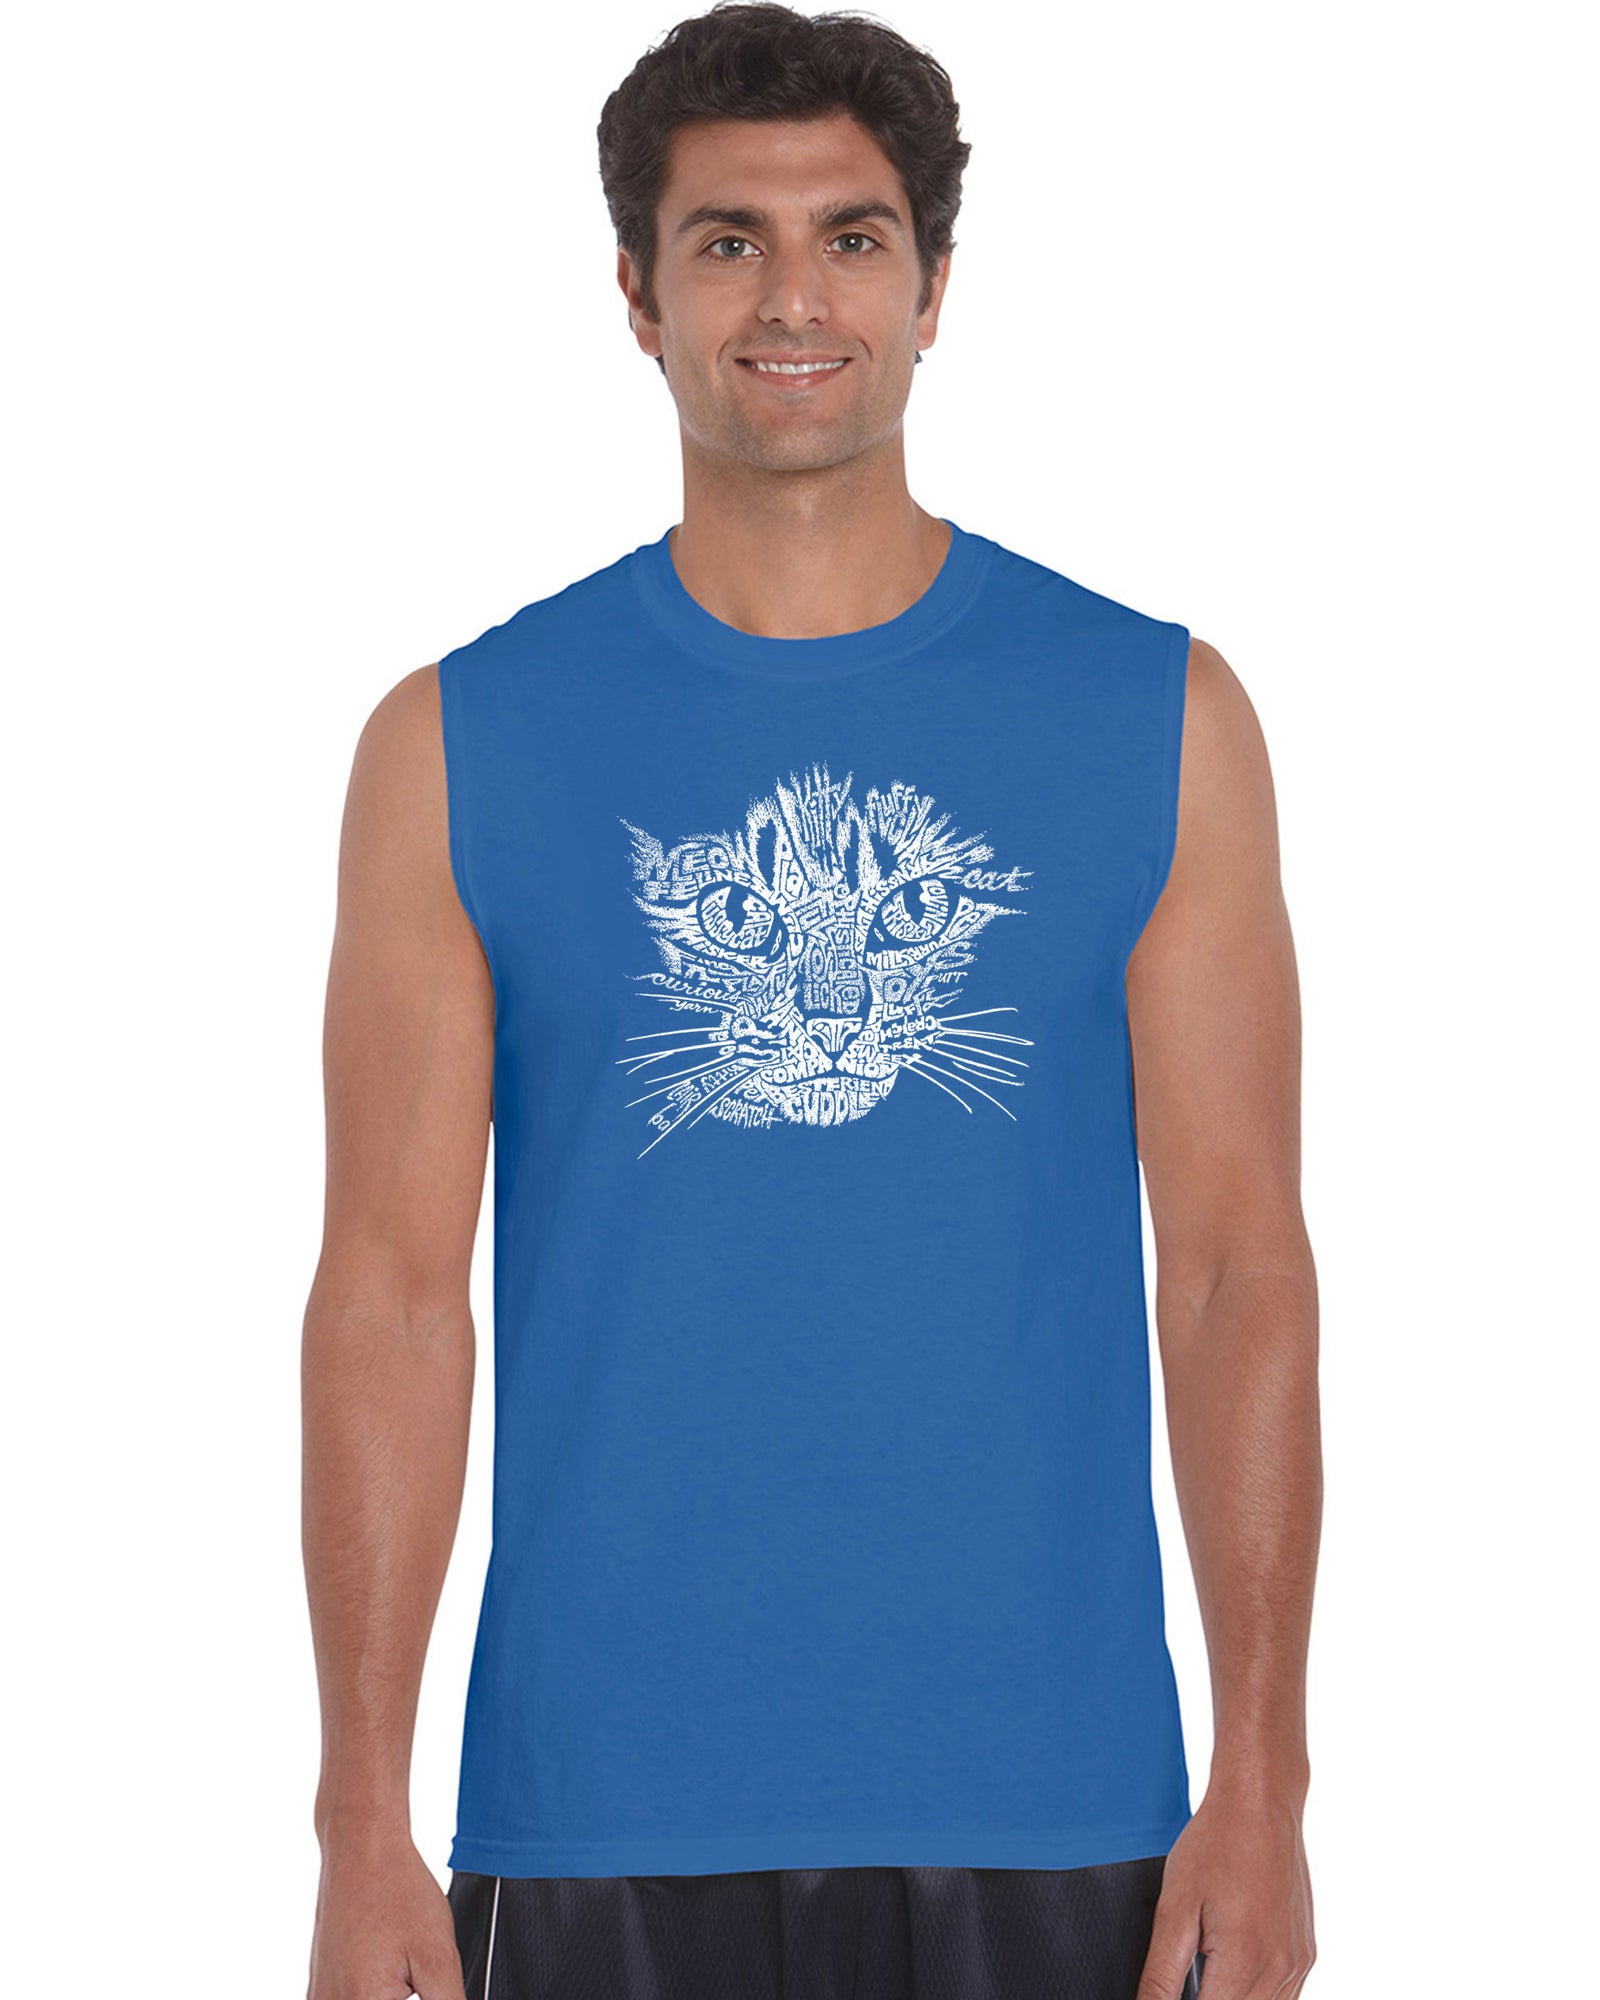 Men's Sleeveless T-shirt - Cat Face